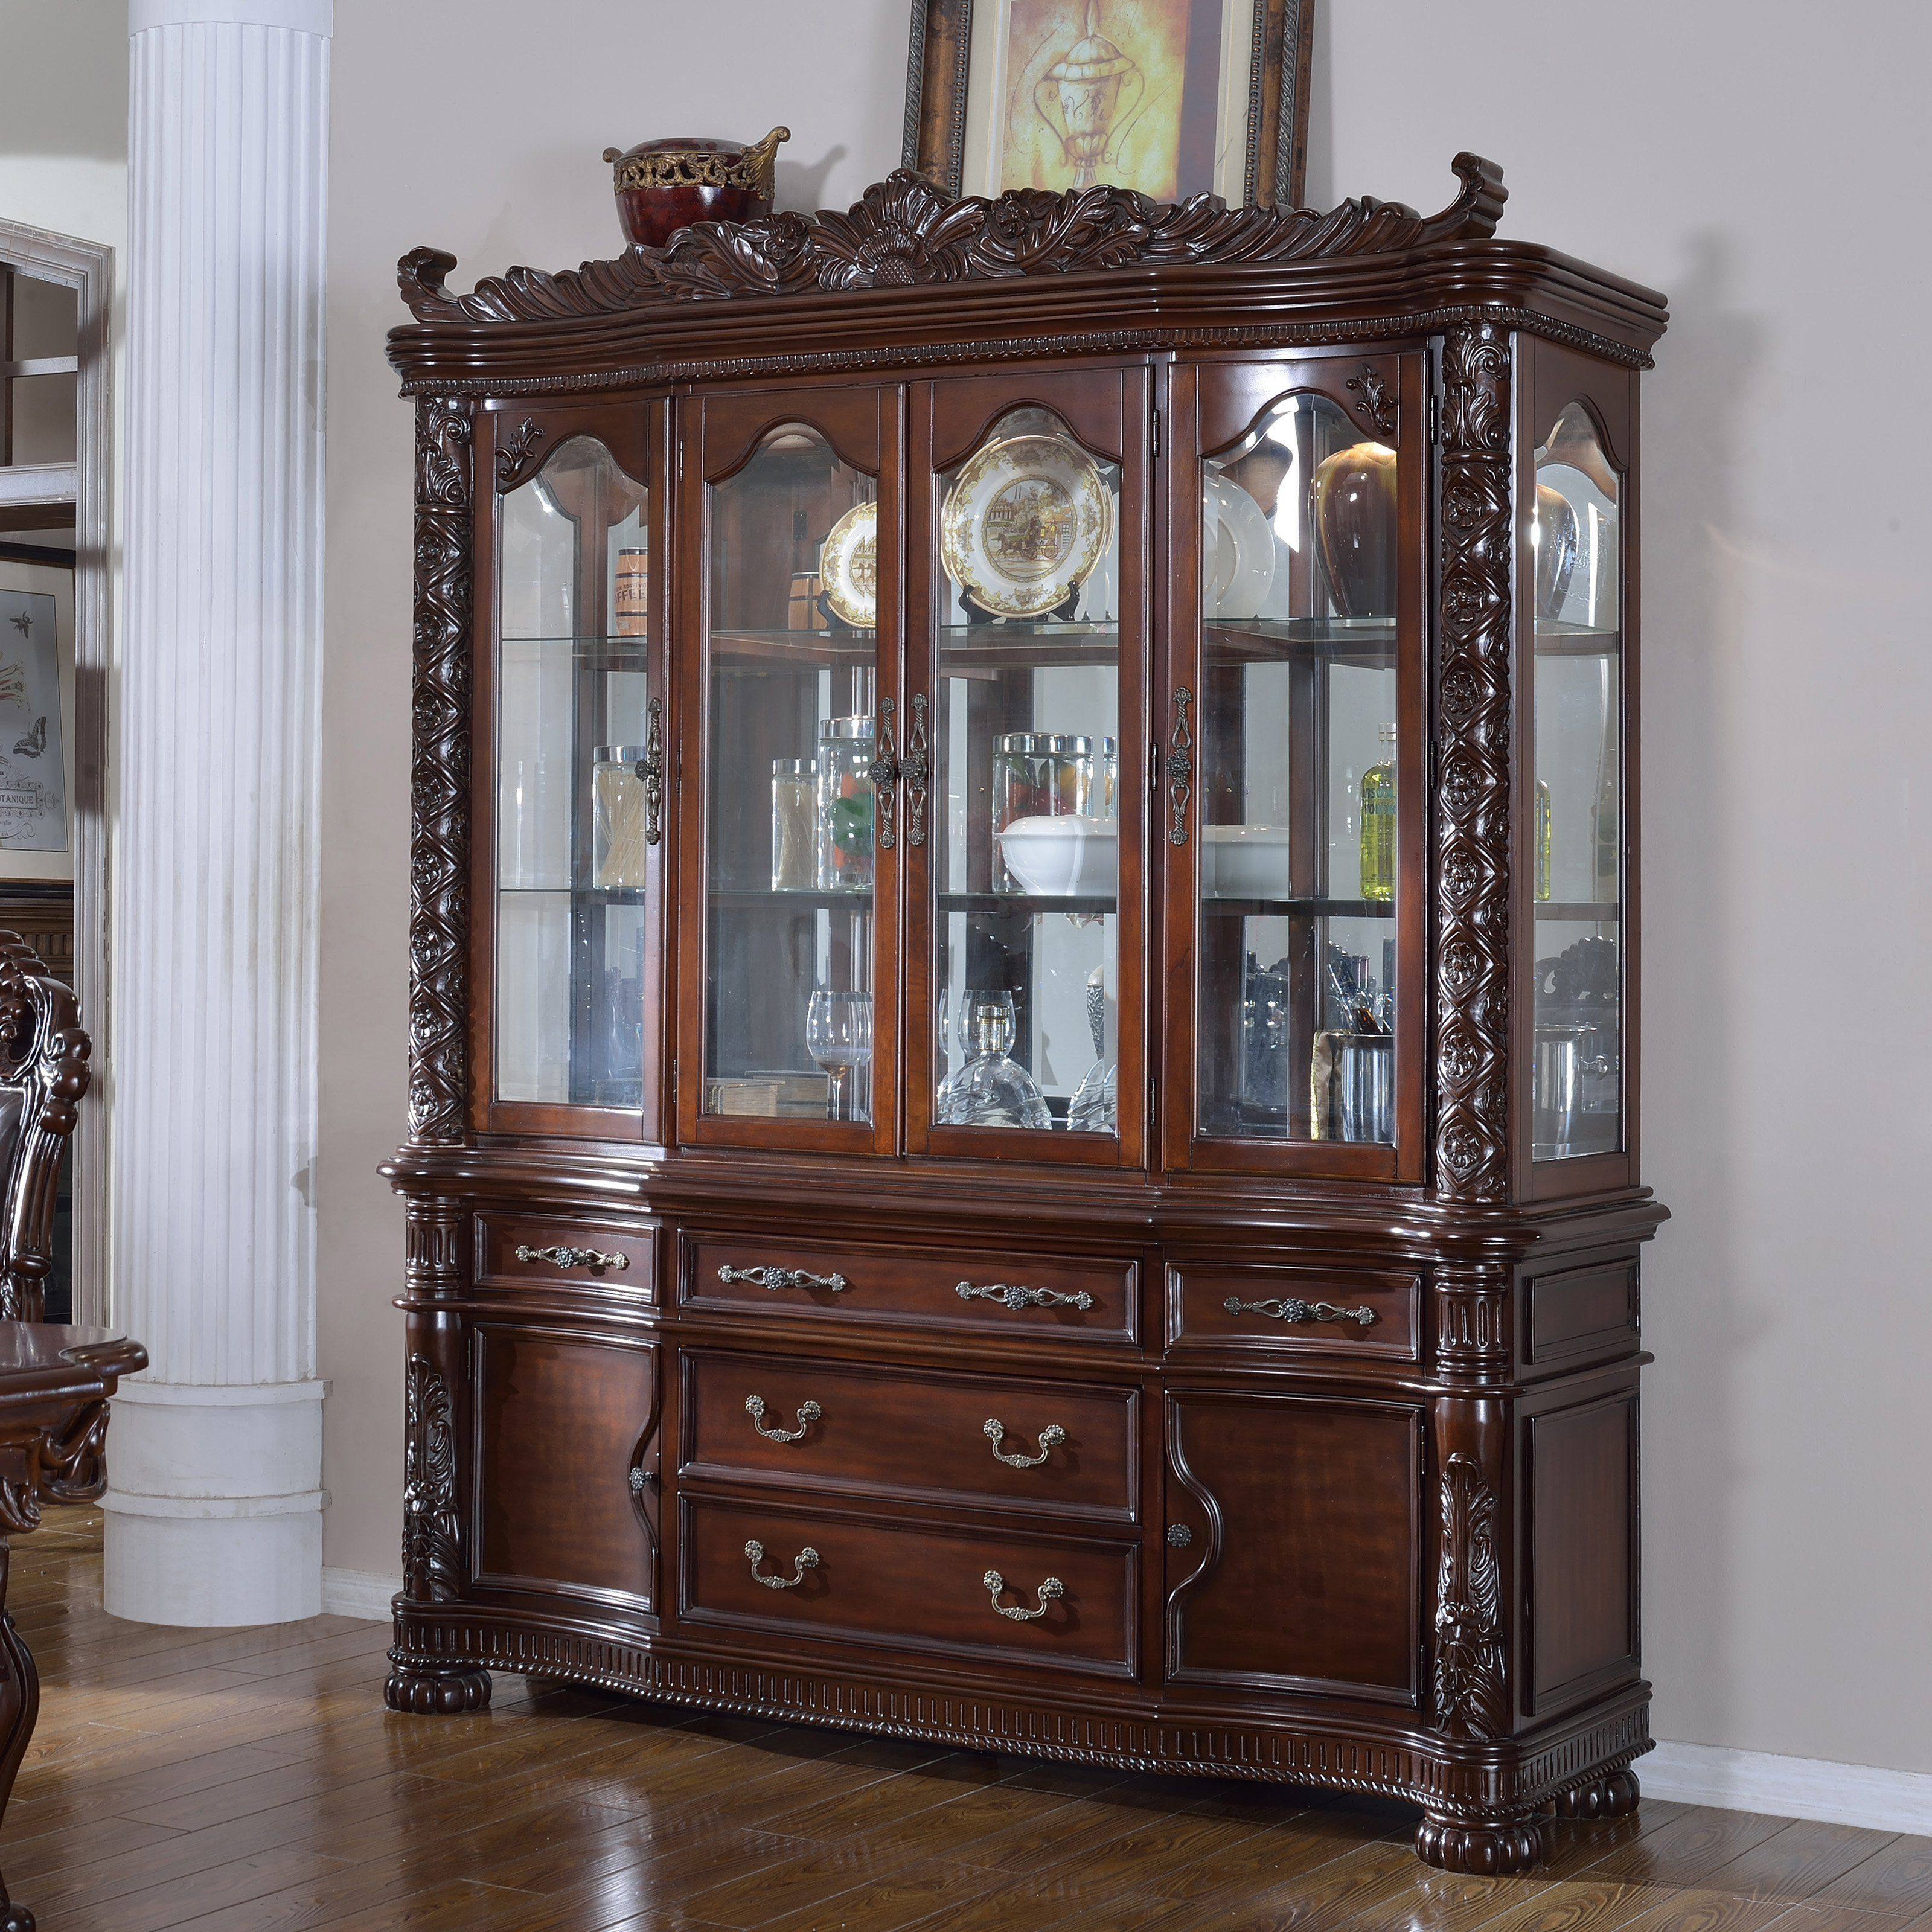 Meridian furniture barcelona china cabinet hb products